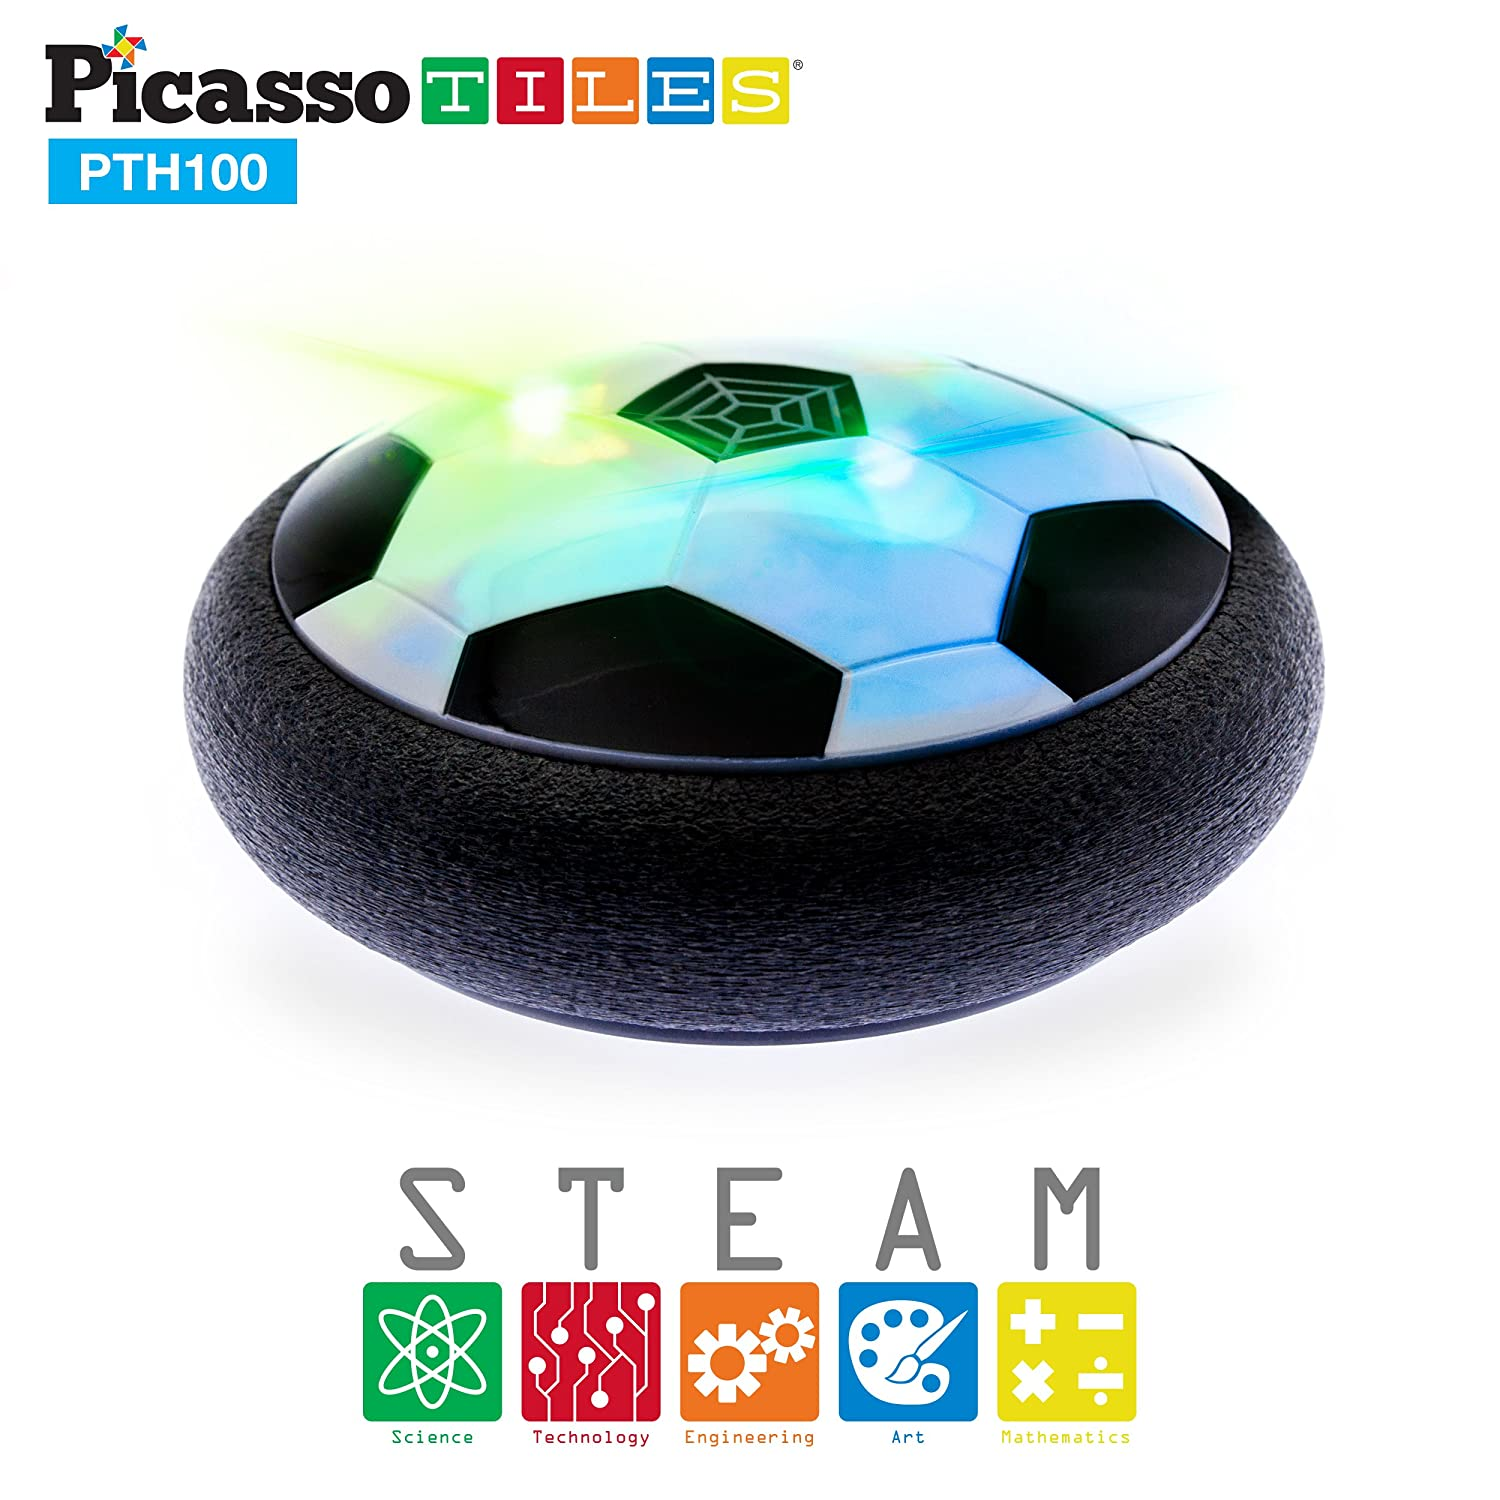 5b08060e3 PicassoTiles Soccer Hoverball Air Hockey Electric Power Airlifted Hover  Ball Gliding Sailing Floating Cushion Disc with LED Foam Bumper Soft Edge  Protector ...